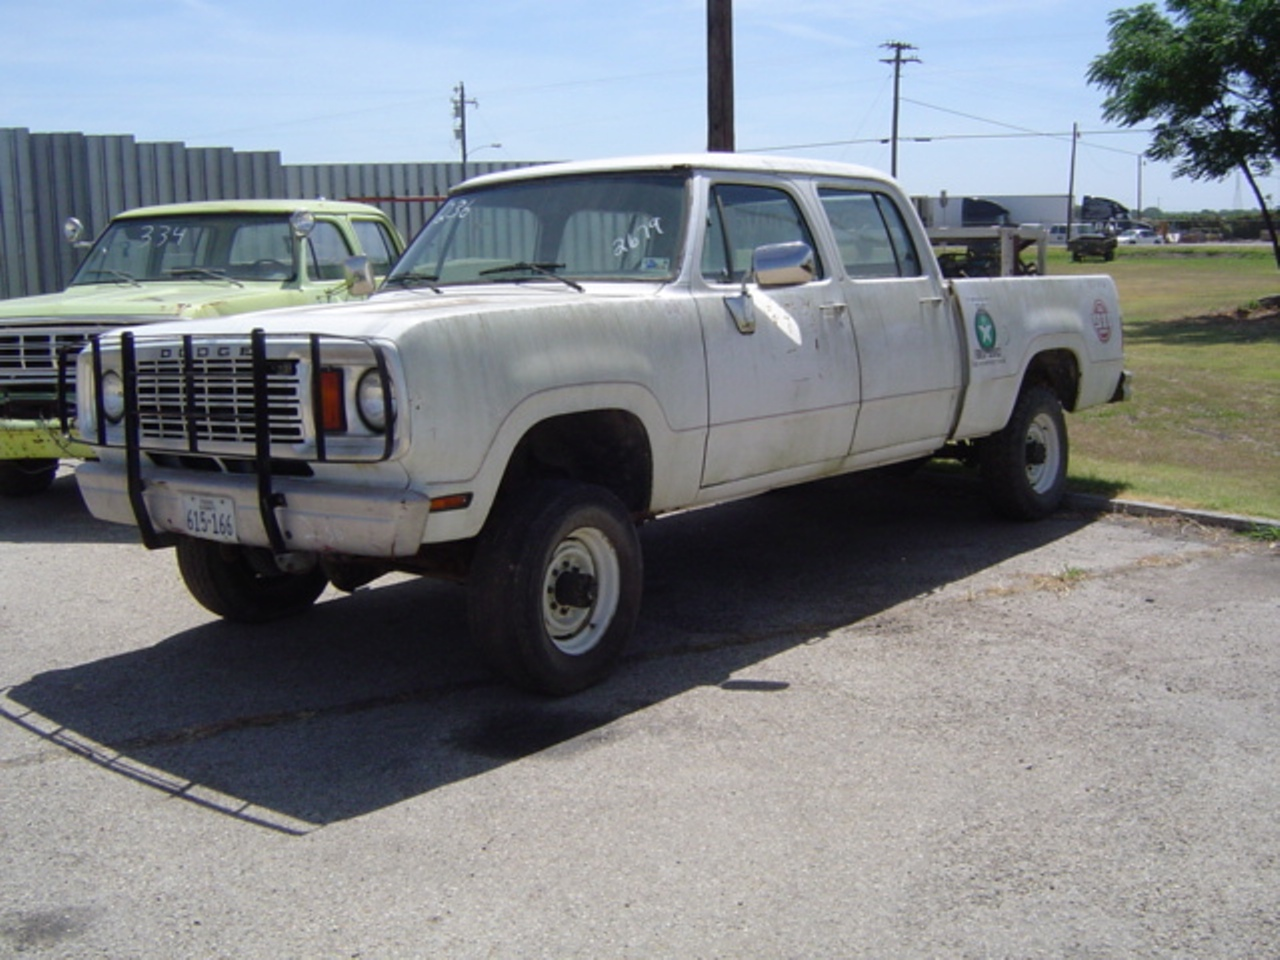 Crew cab truck for sale